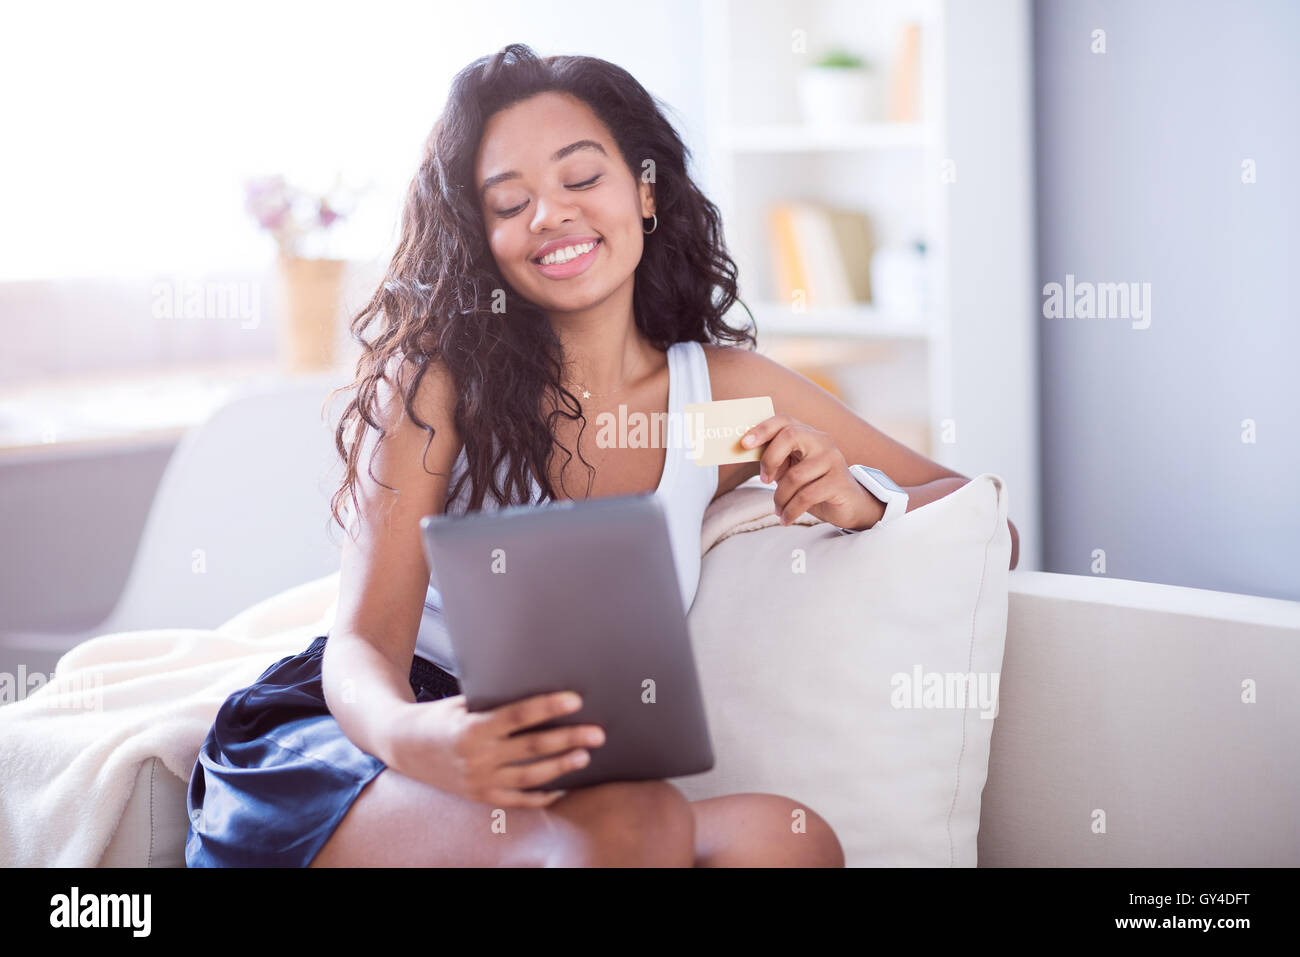 Cheerful woman using tablet - Stock Image